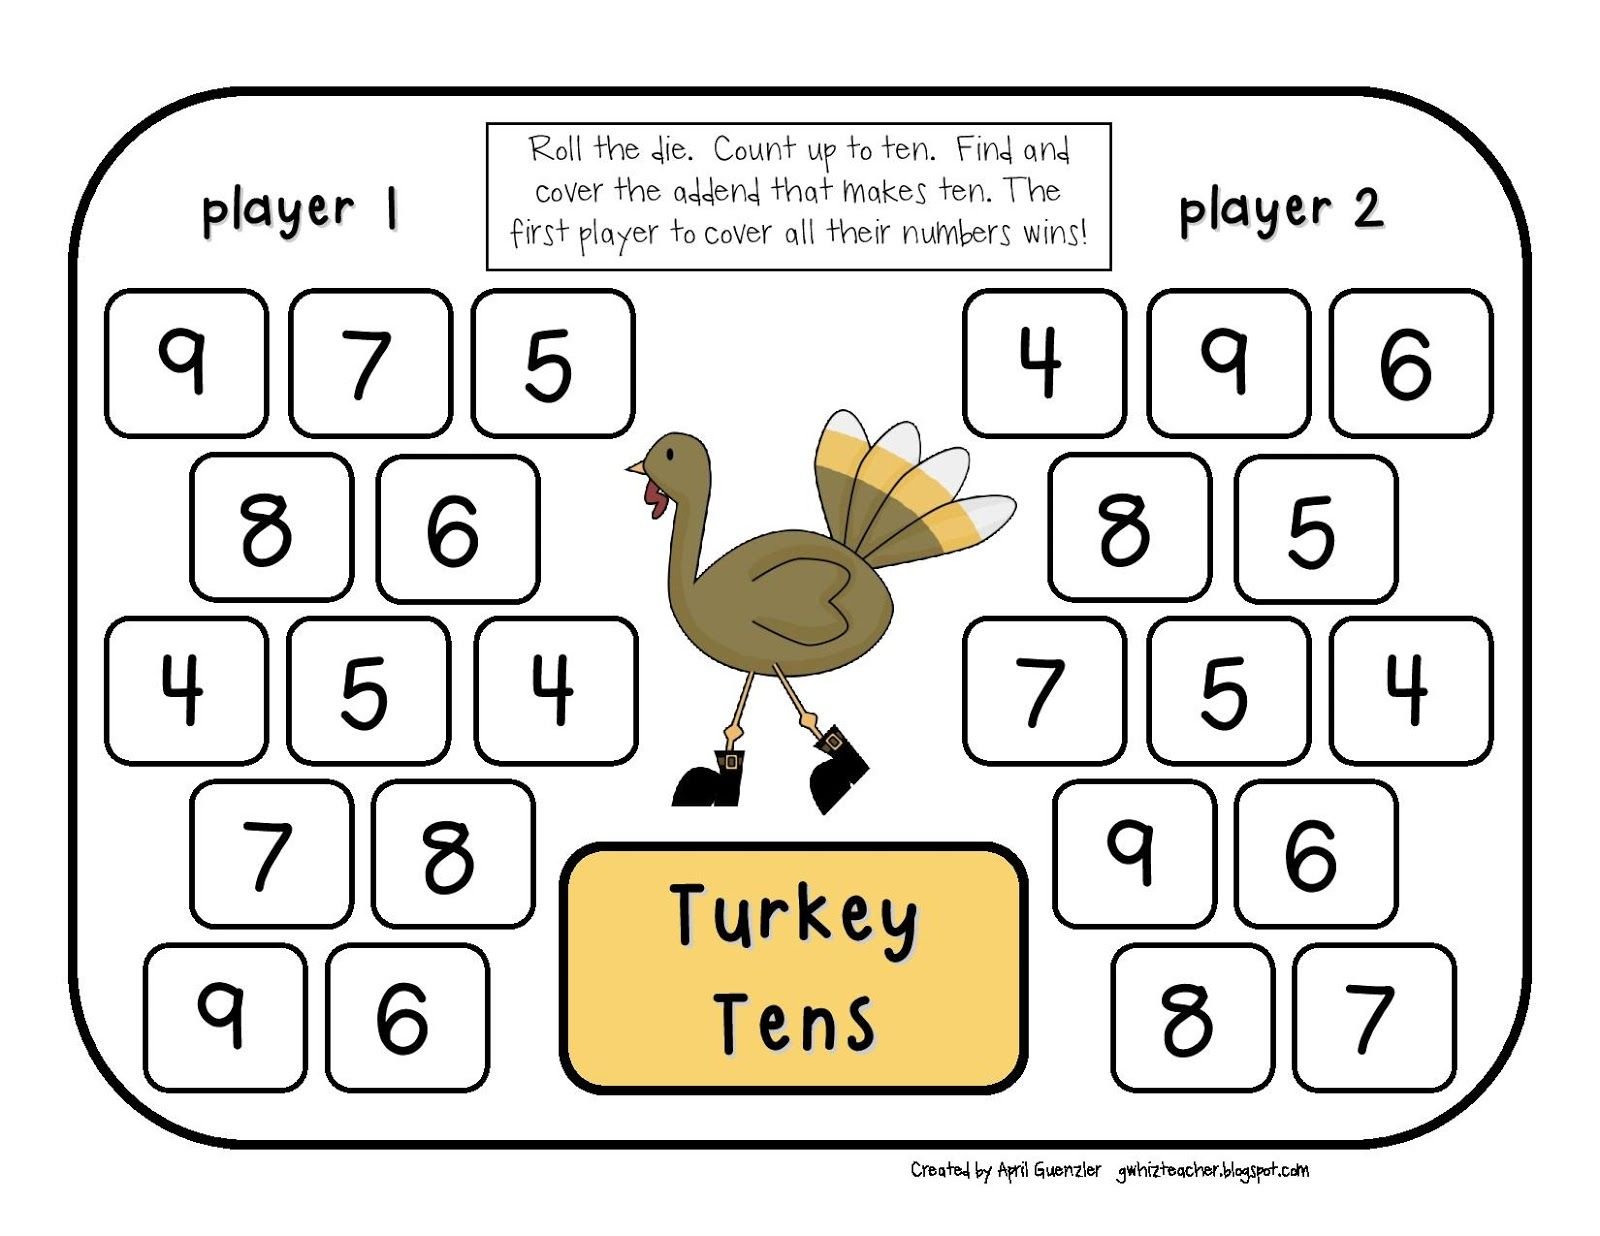 Gwhizteacher Thanksgiving Math Games Math Daily 5 Stations 1st Grade Math Games Turkey Tens